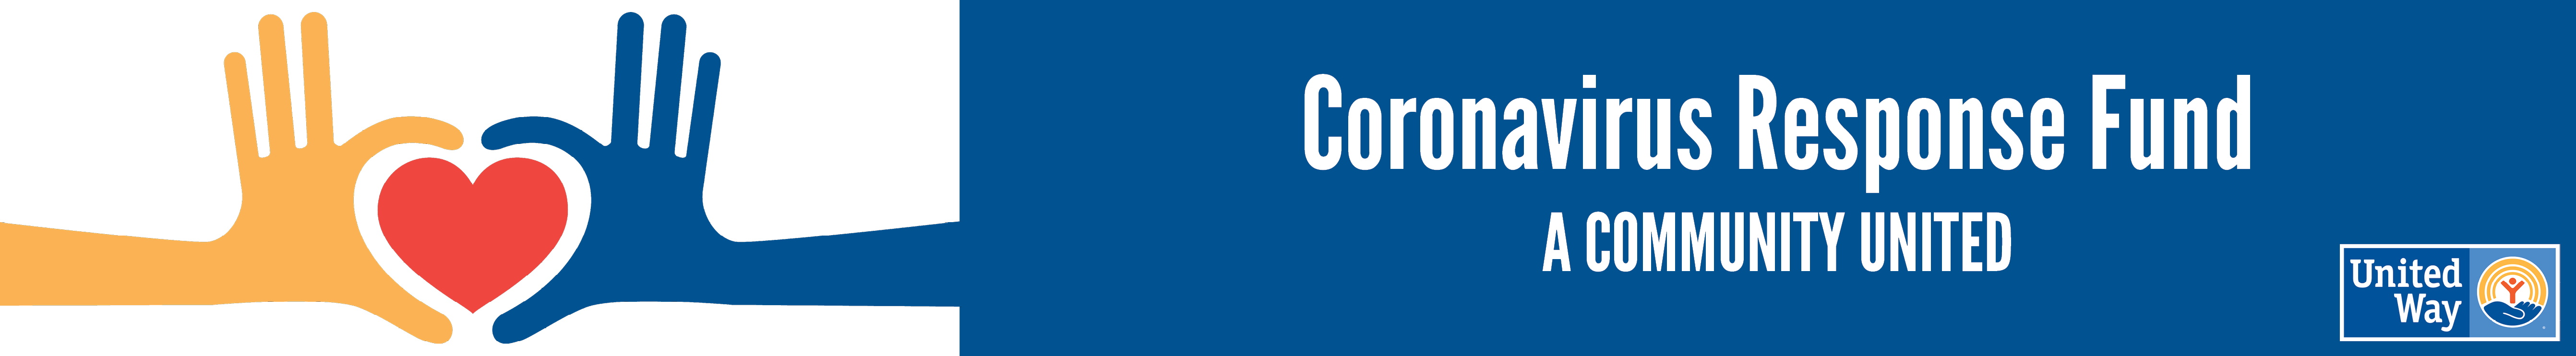 COVID-19 iAttend Banner_With Logo.png